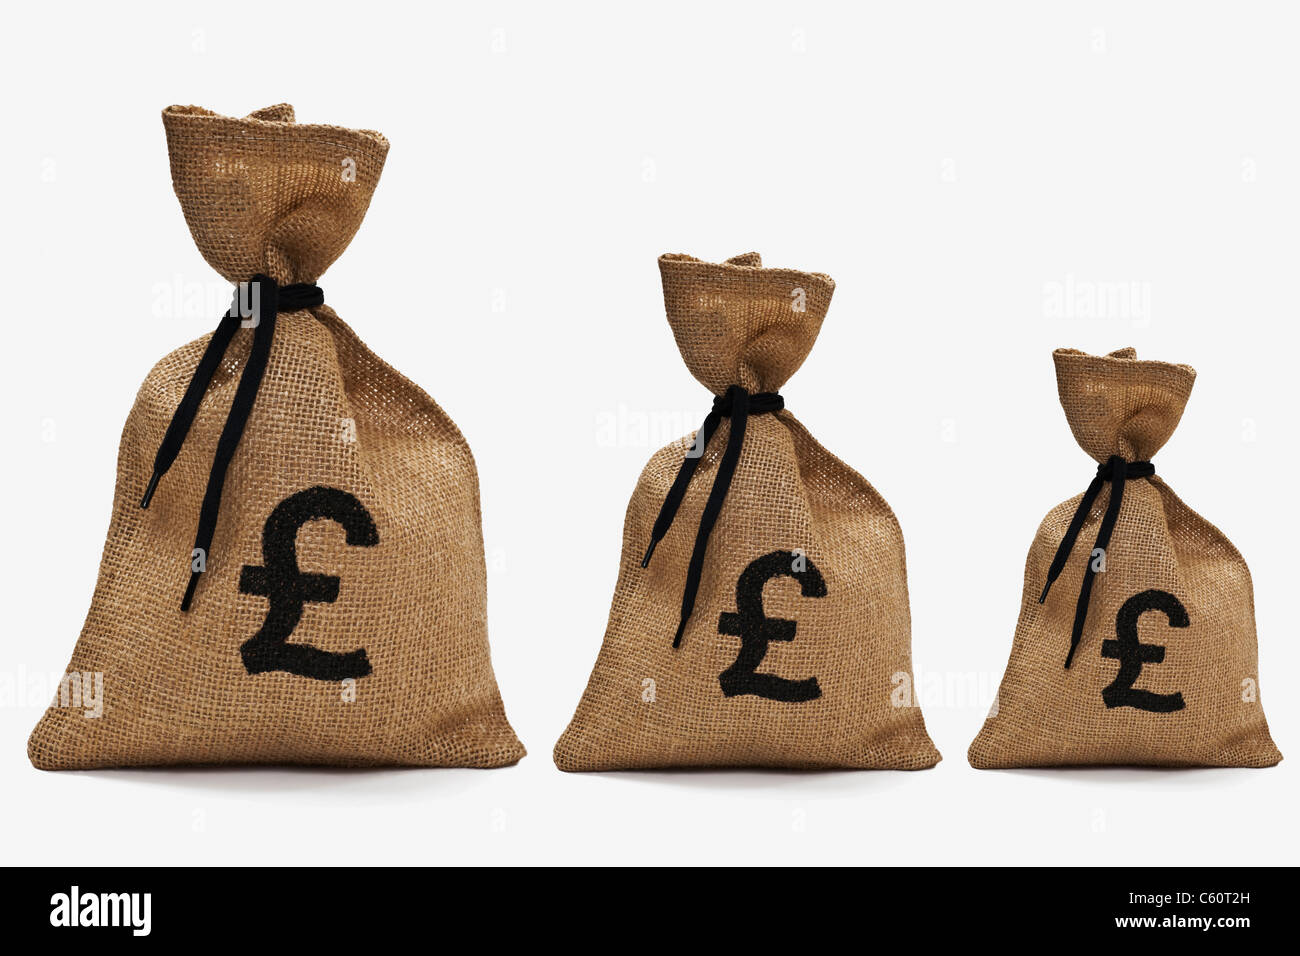 three different big money bags with pound sign next to each other - Stock Image